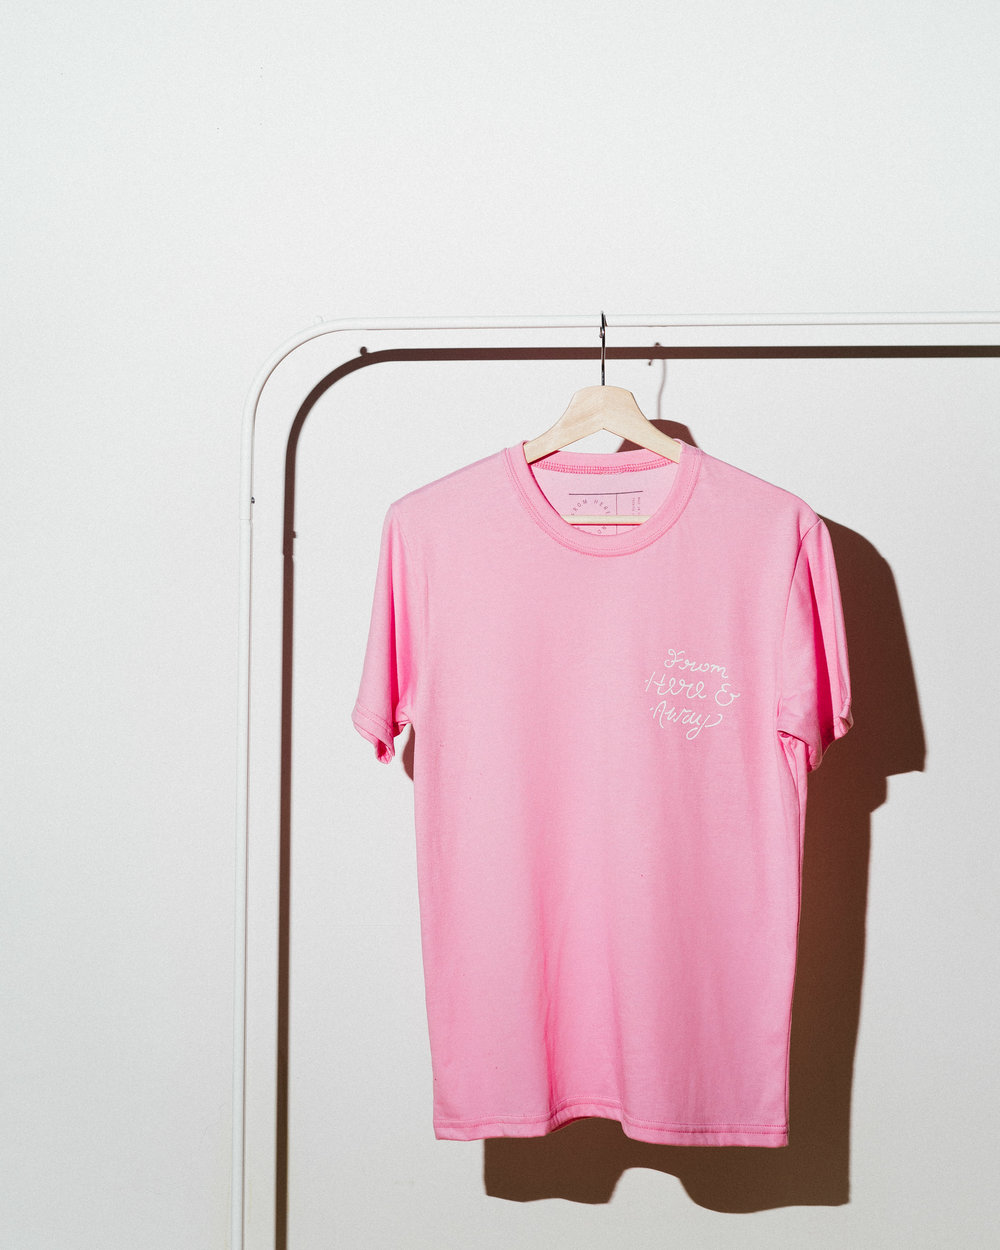 Squiggly Signature Pink T